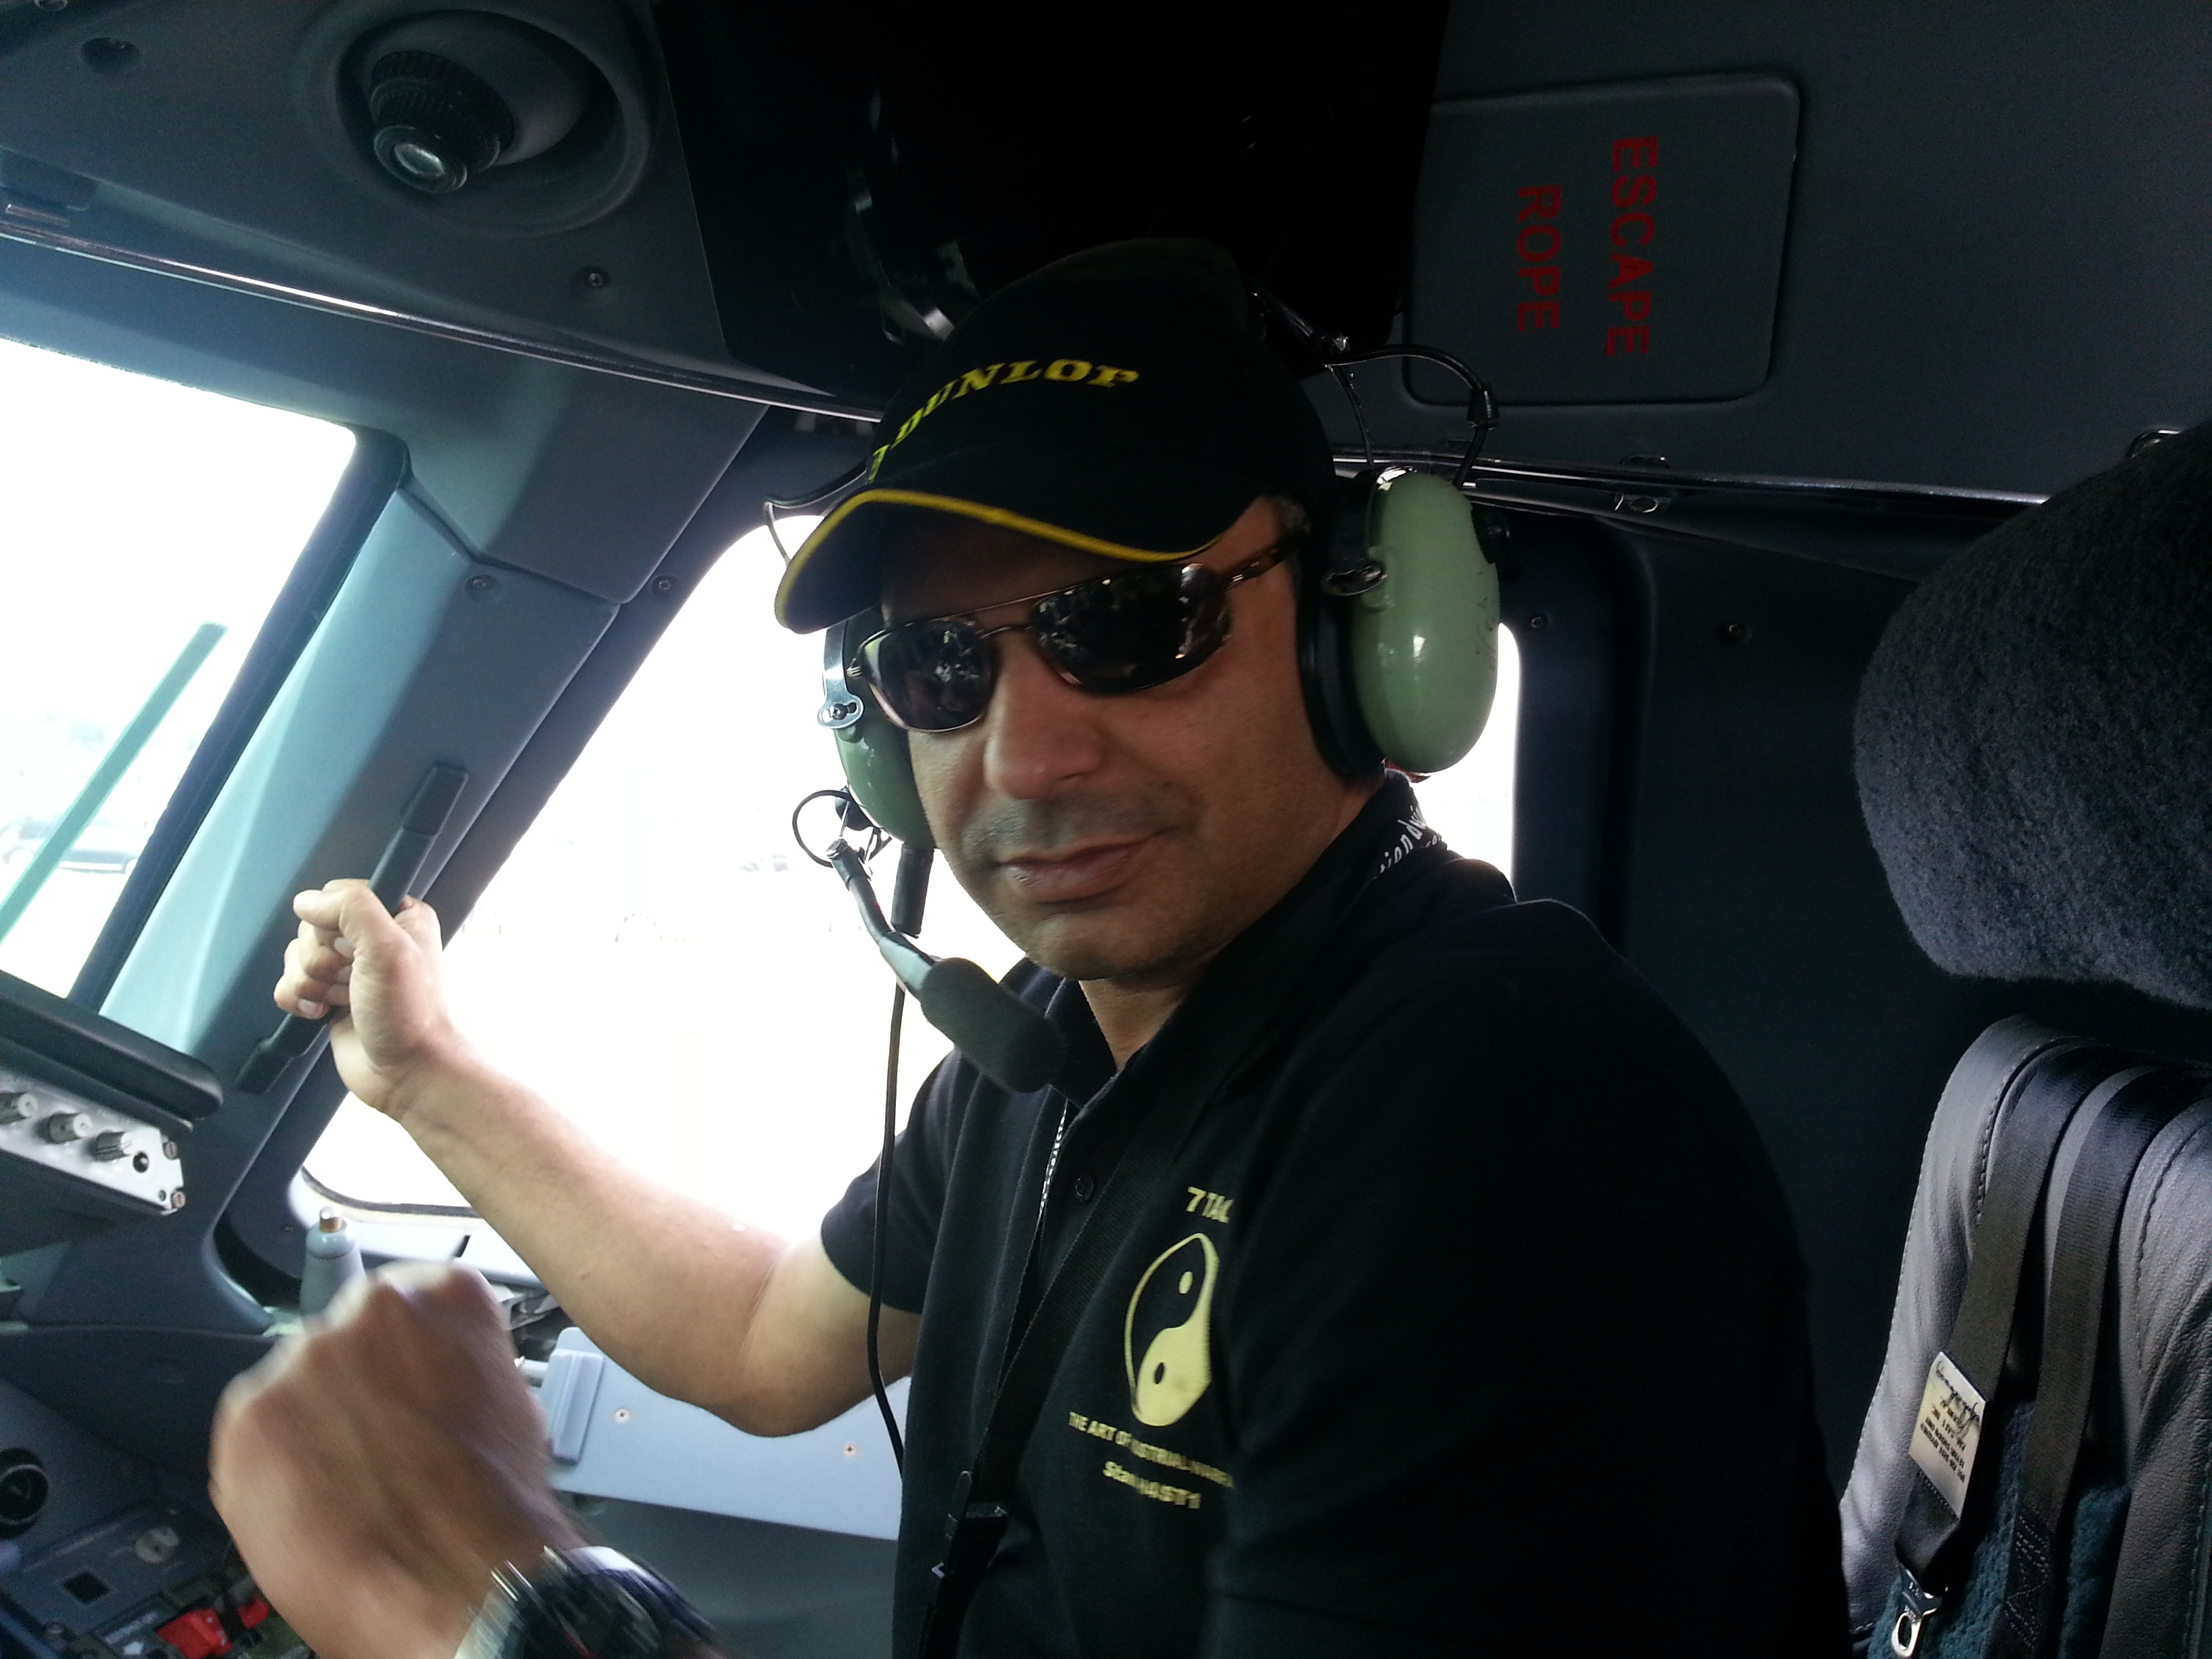 Amar Manzoor, founder of 7Tao, sits in the cockpit of an Embreaer plane. Manzoor has developed a to train businesses on industrial warfare. (Amar Manzoor)